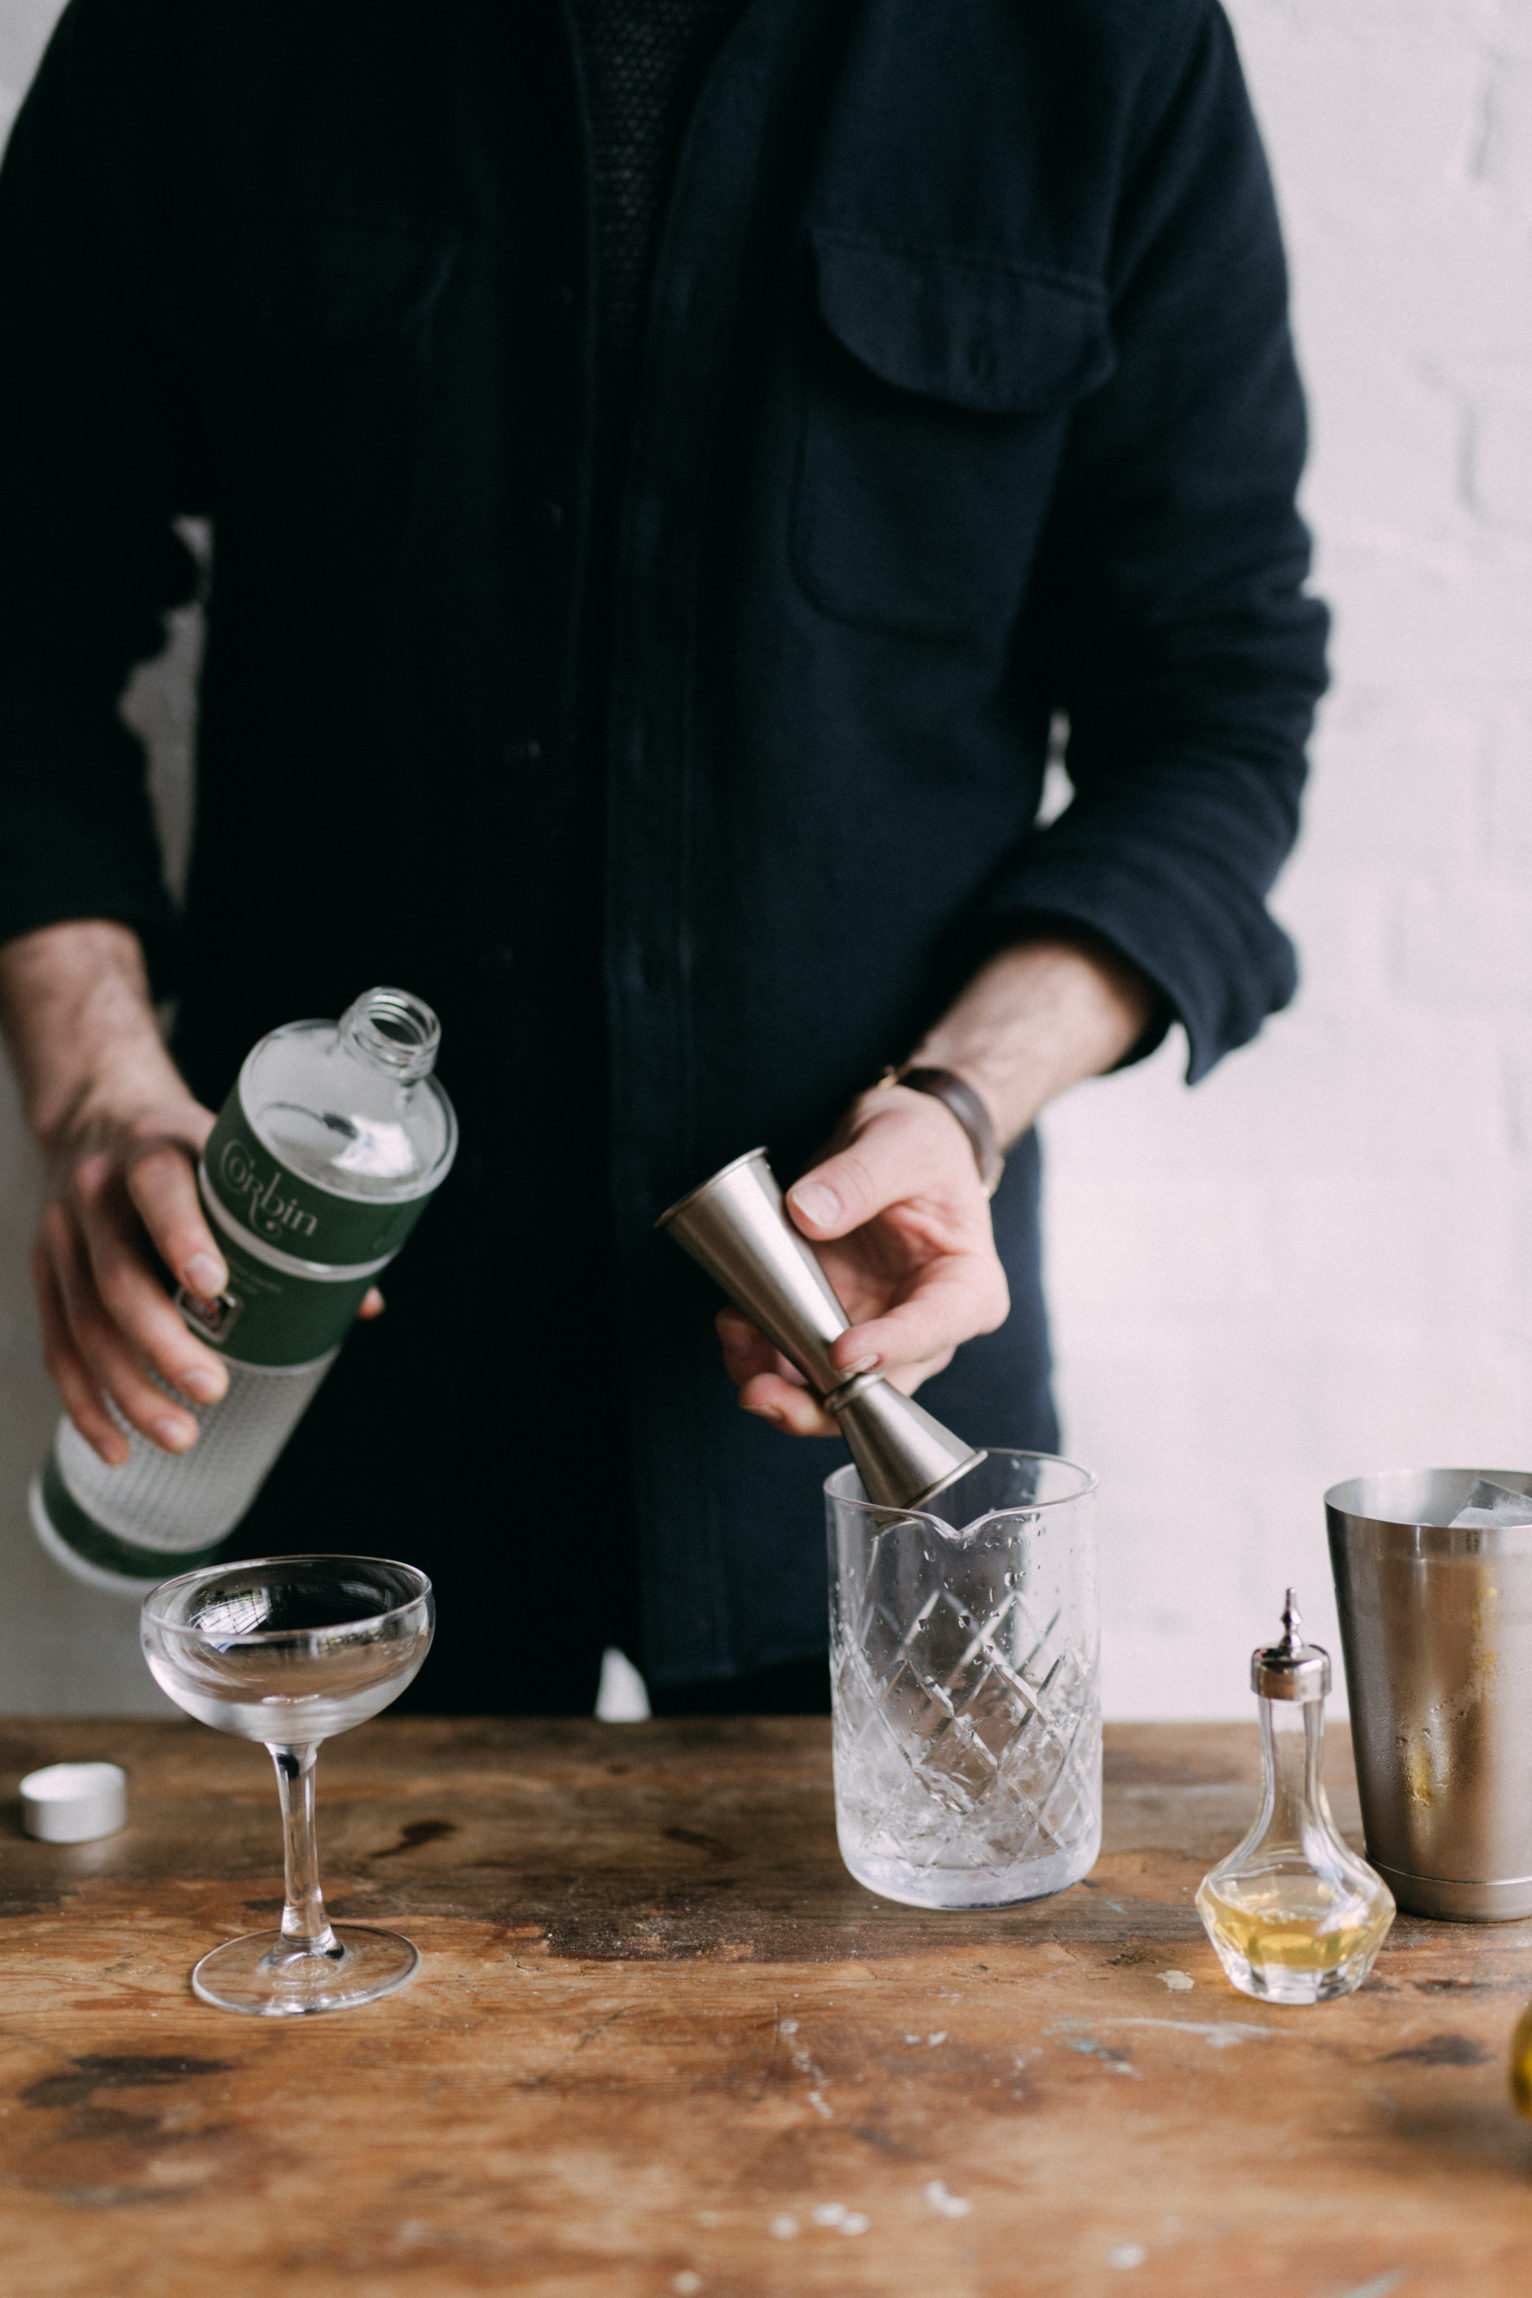 Pouring Gin into Mixing Glass